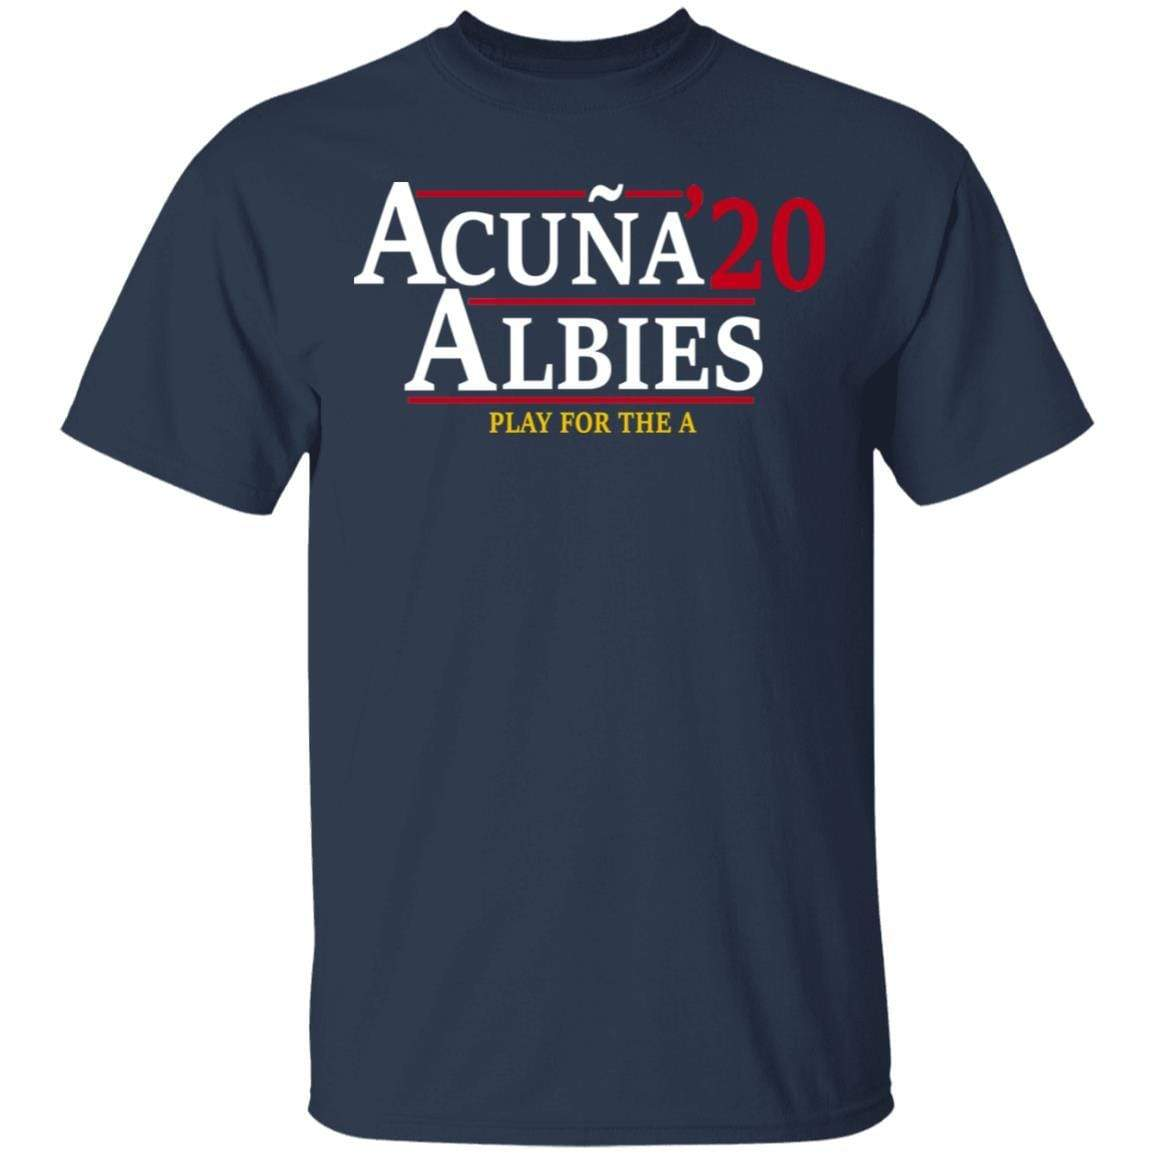 Acuna Albies 2020 Play For The A T-Shirts, Hoodies 1049-9966-88478048-48248 - Tee Ript